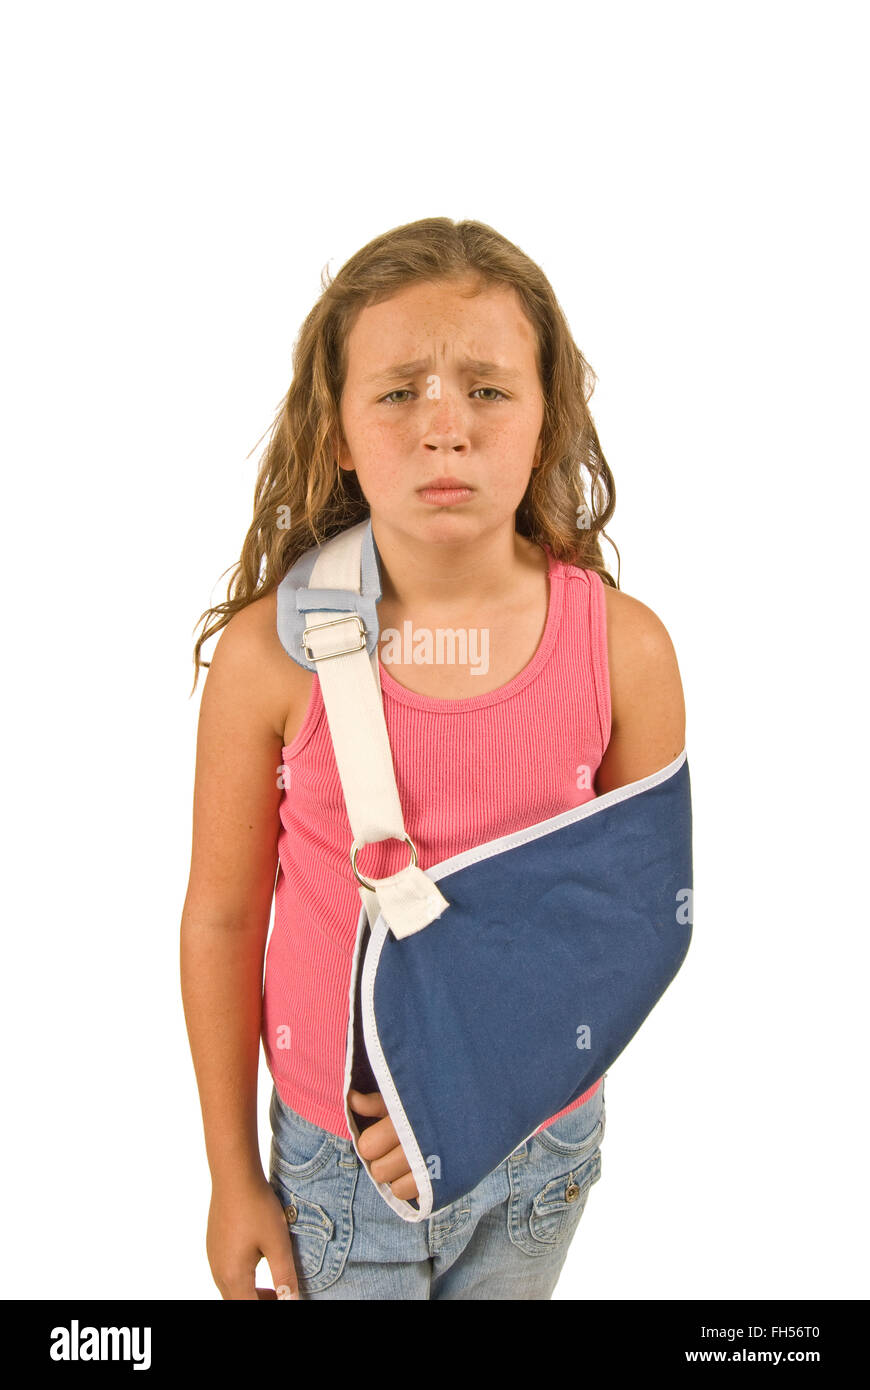 Injured Little Girl With Arm Sling - Stock Image